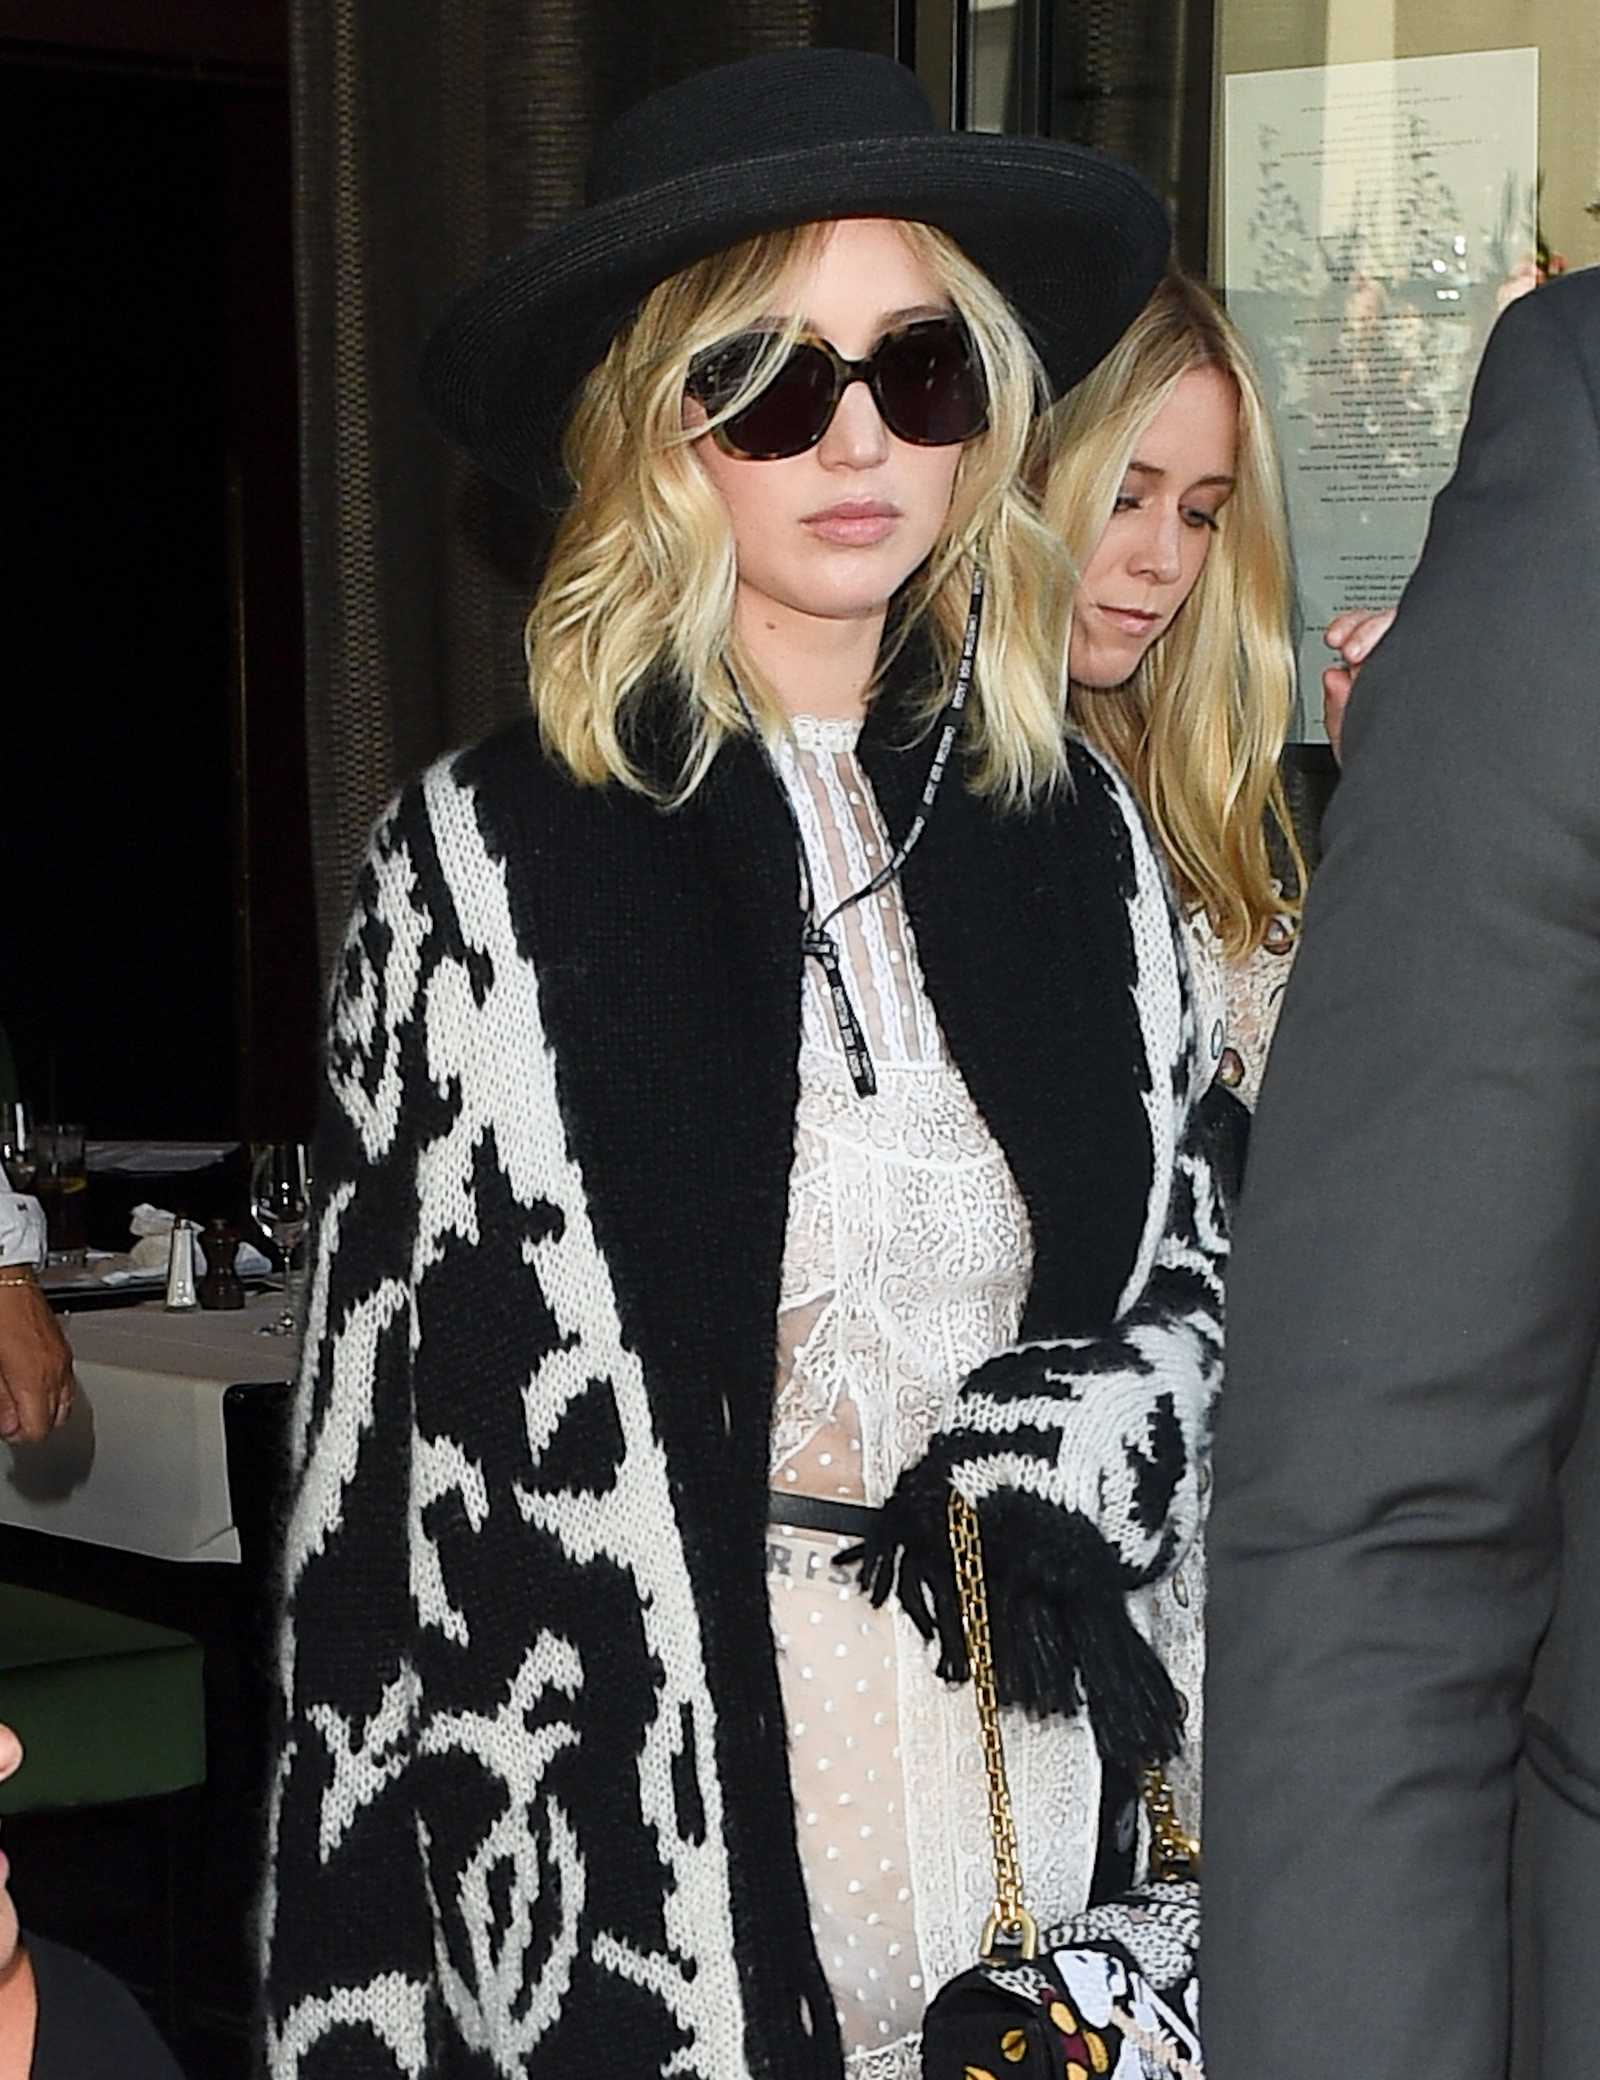 http://jenniferlawrencedaily.com/gallery/albums/userpics/10001/Jennifer_Lawrence_-_At_Avenue_Montaigne_in_Paris_on_July_3-01.jpg